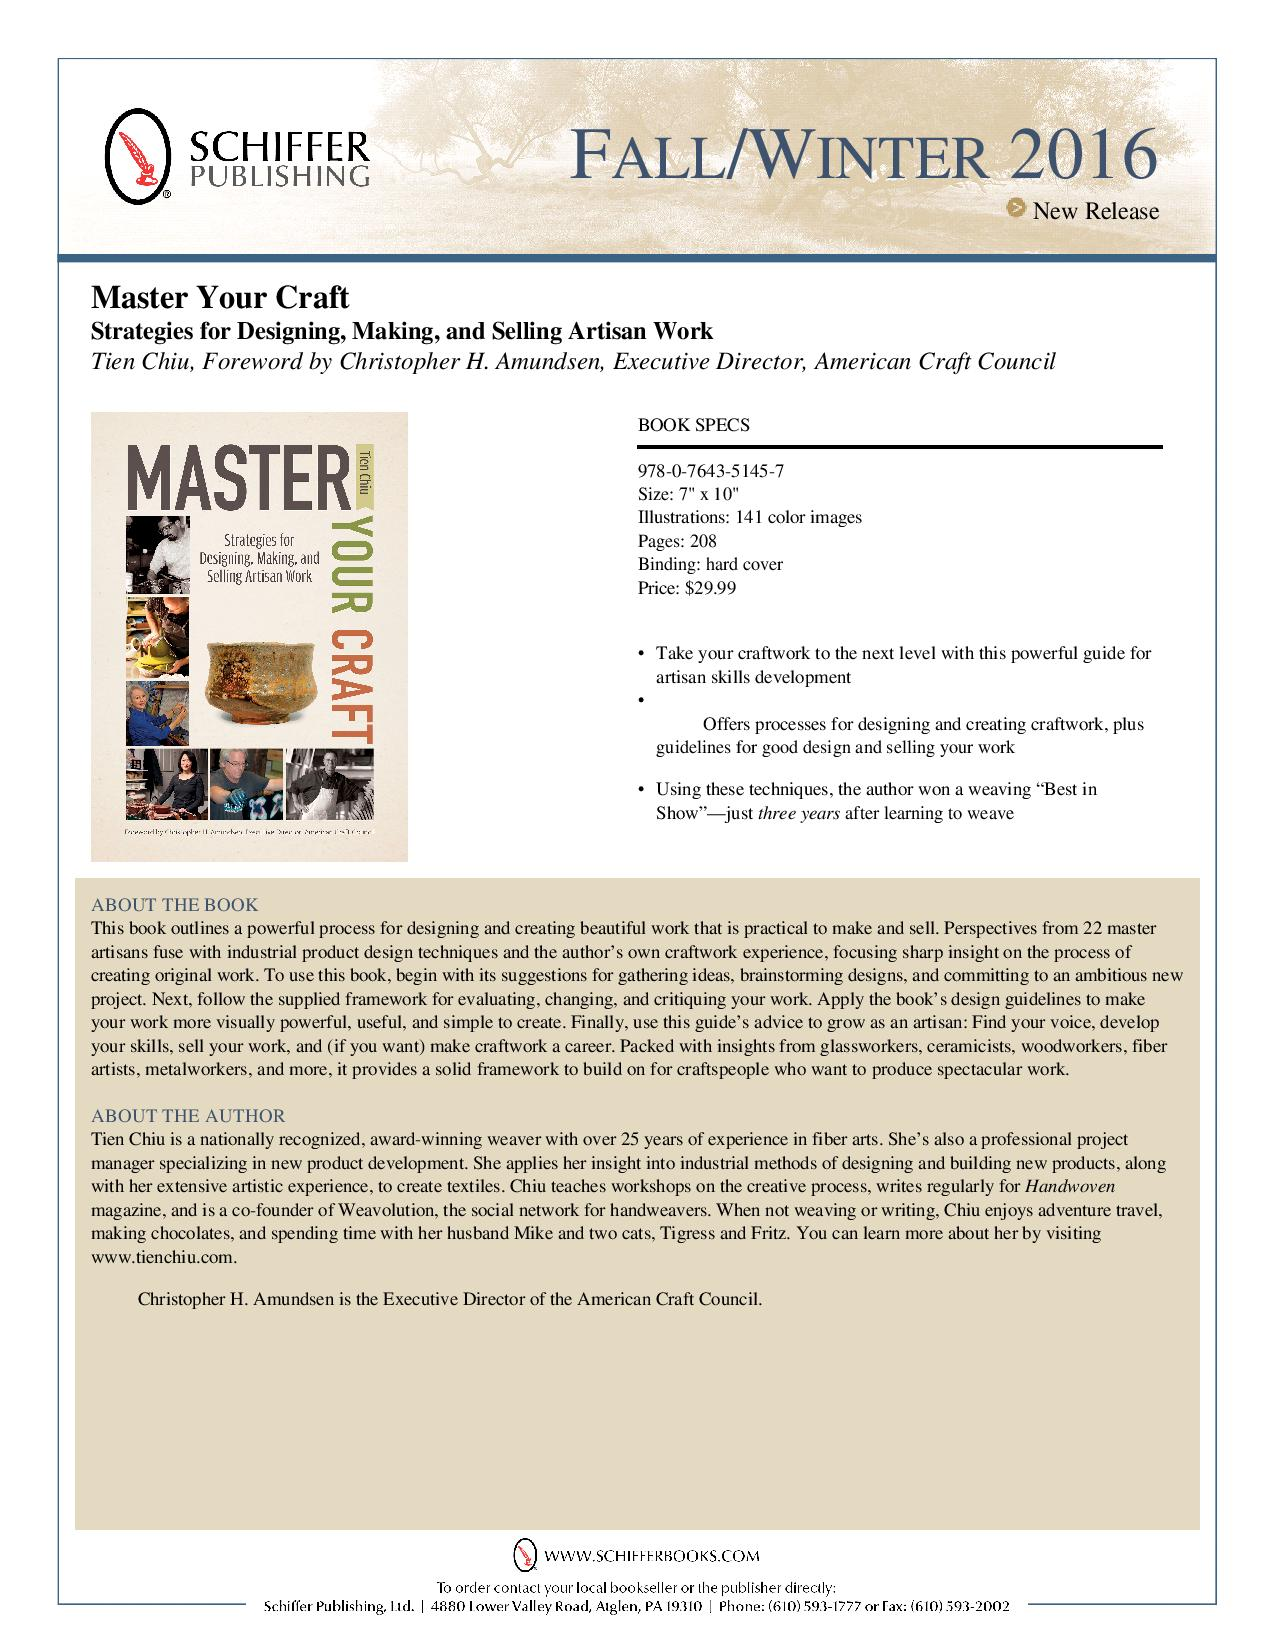 Sales flyer for Master Your Craft: Designing, Making, and Selling Artisan Work